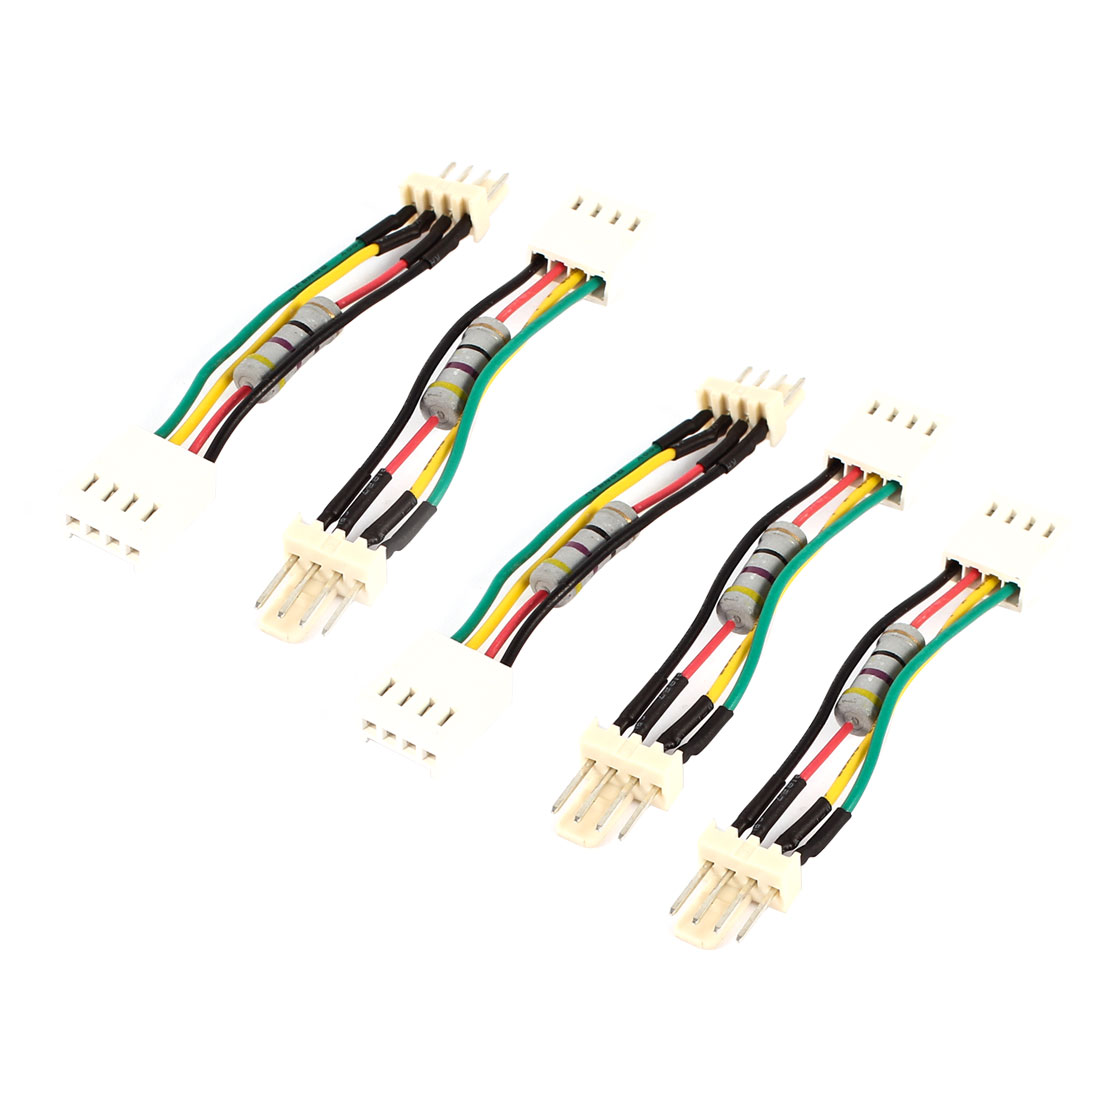 5 Pcs Desktop PC PWM Fan Speed Noise Reduce 4 Pins 4Wires Resistor Cable Connector